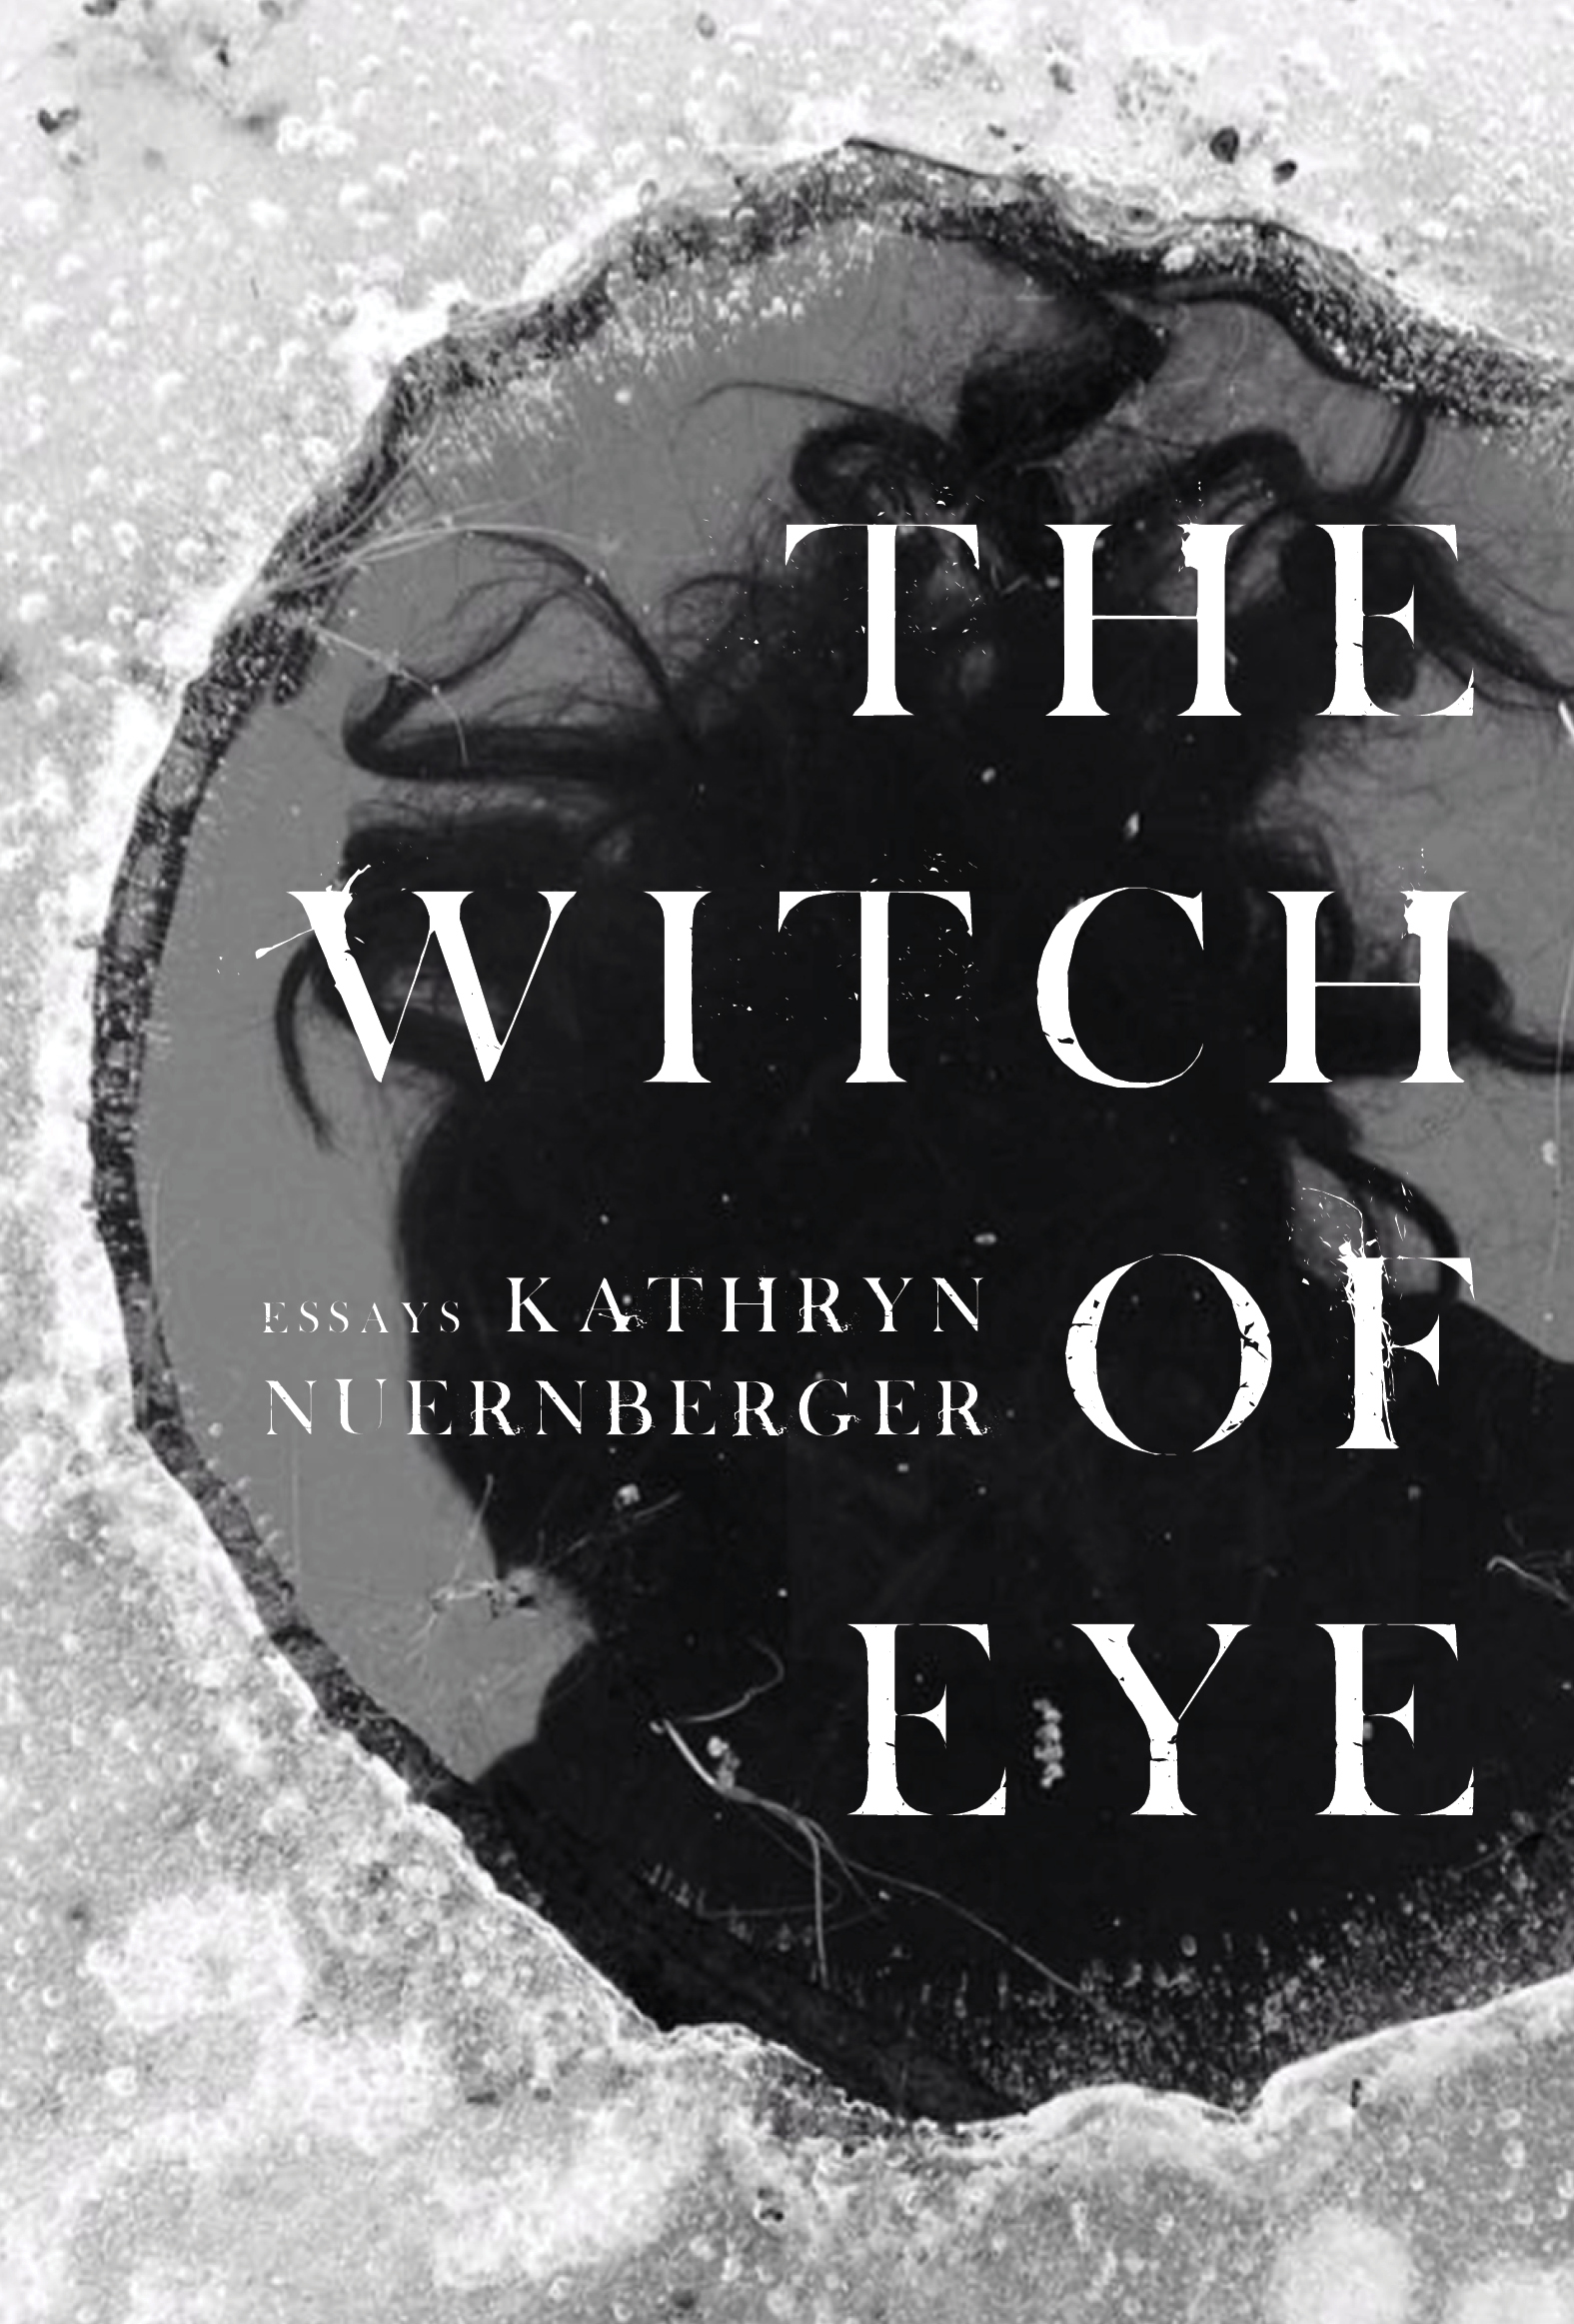 One of our recommended books is The Witch of Eye by Kathryn Nuernberger